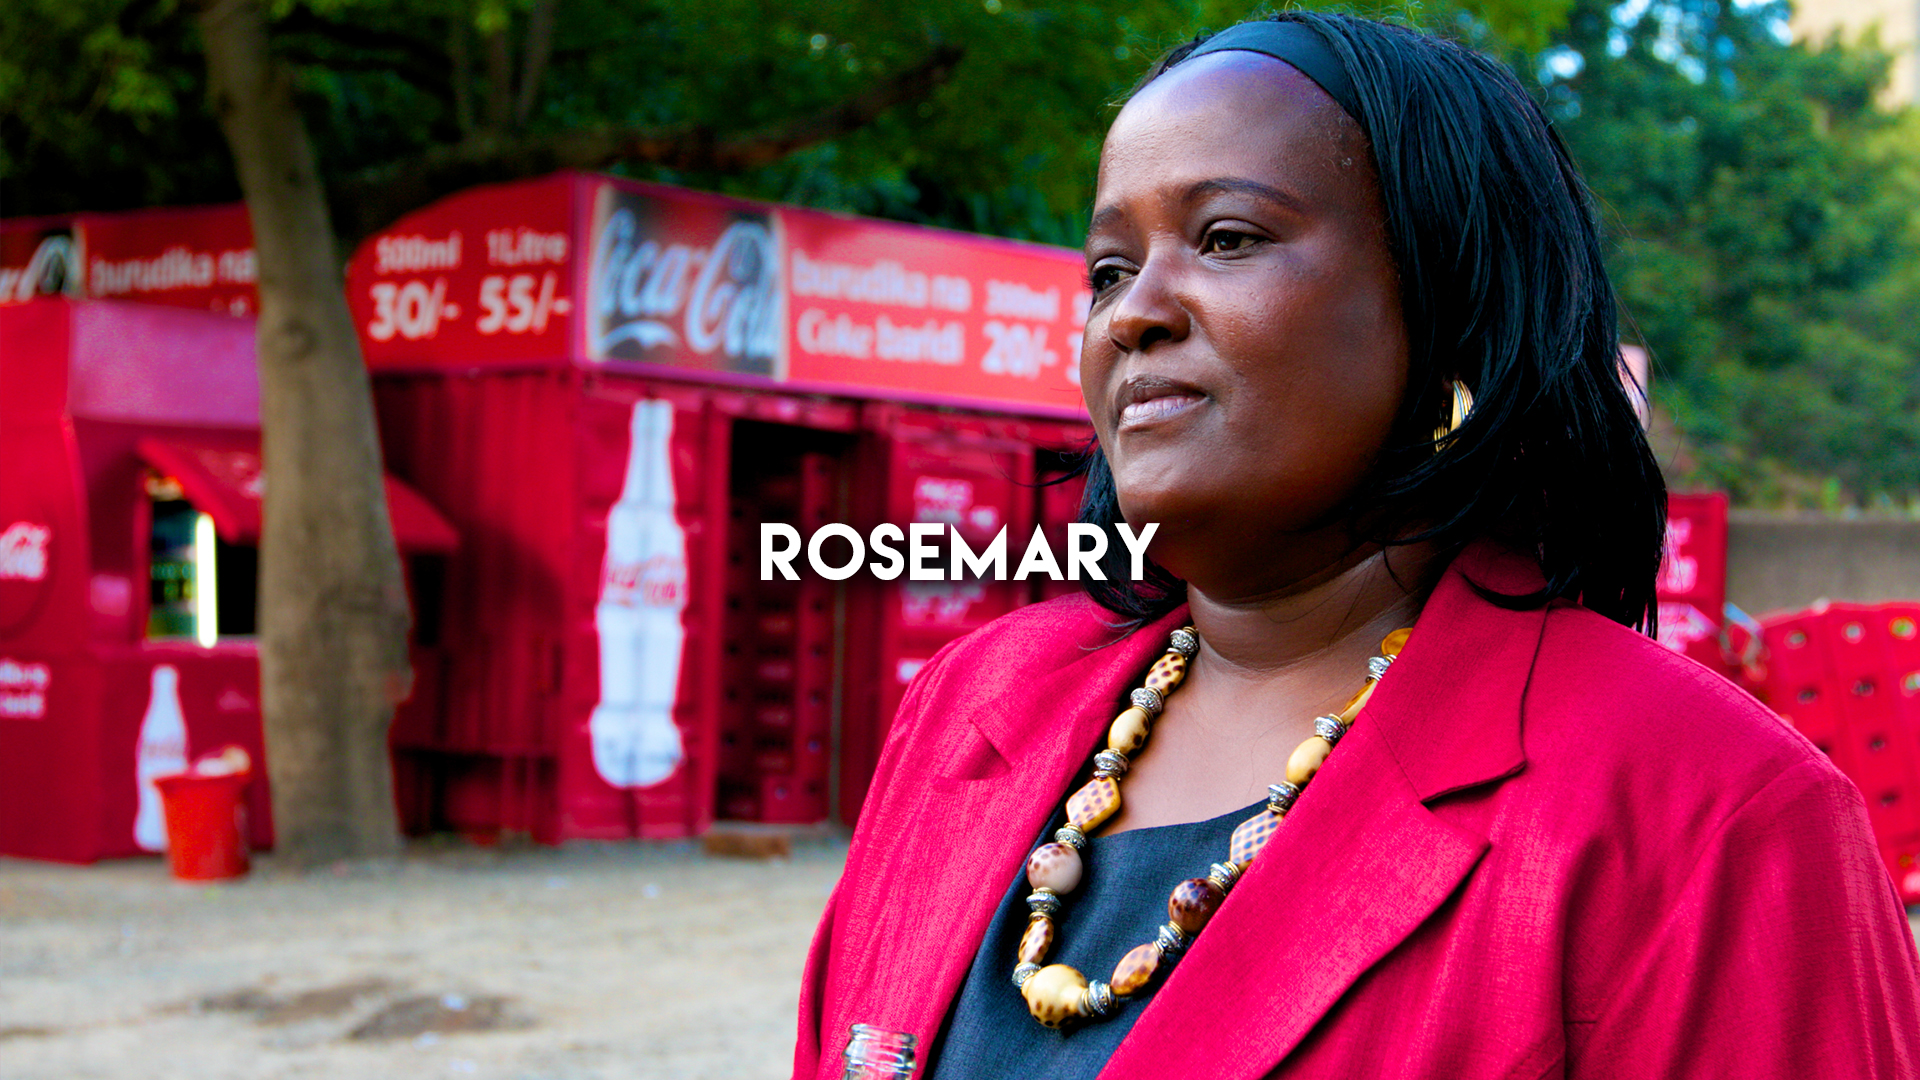 rosemary-5by20